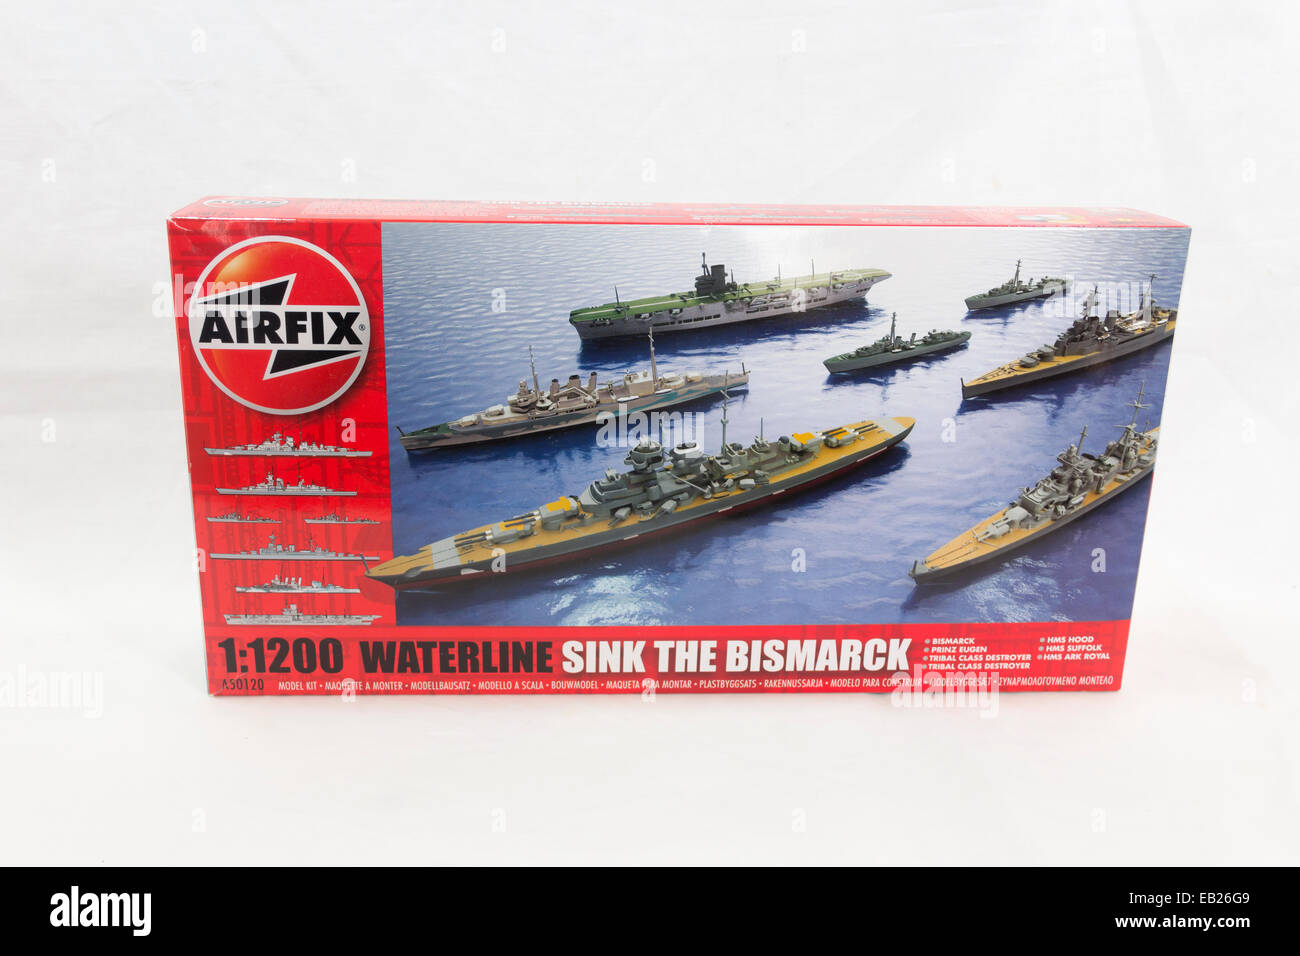 Airfix 'Sink the Bismark'' ship model construction kit box. A retail boxed collection of 1:1200 scale - Stock Image